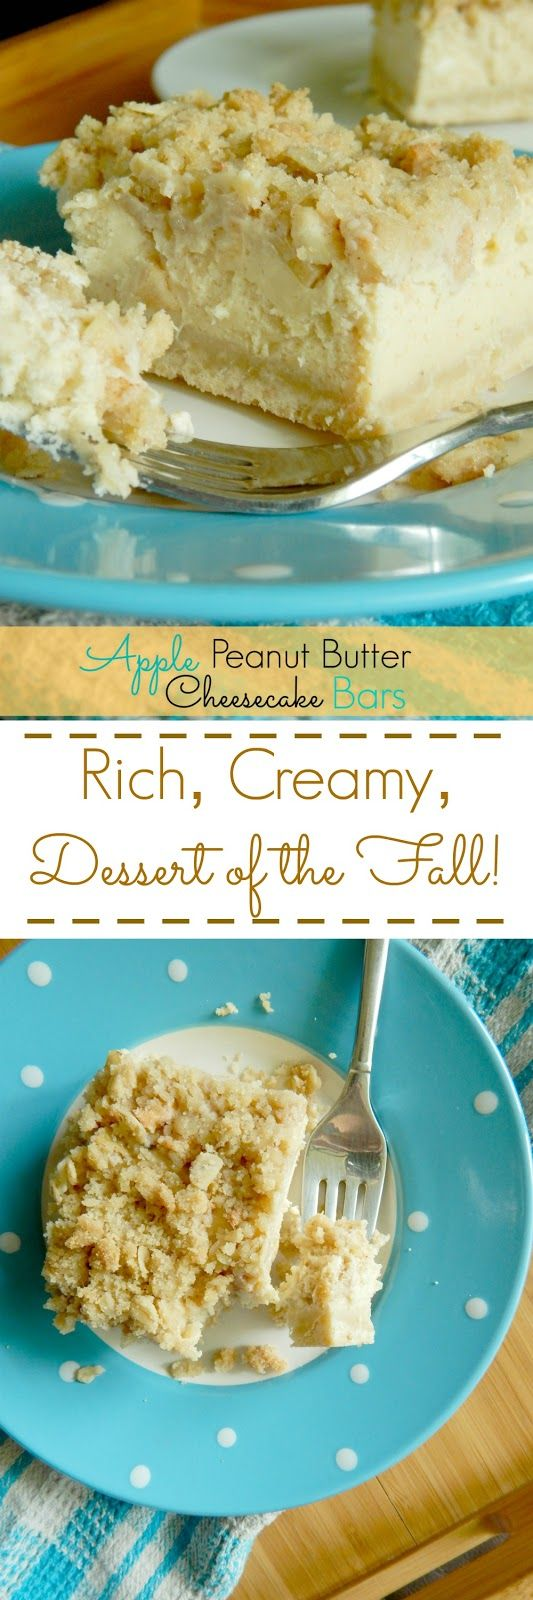 Apple Peanut Butter Cheesecake Bars...creamy, rich, the dessert you want to make in the Fall!